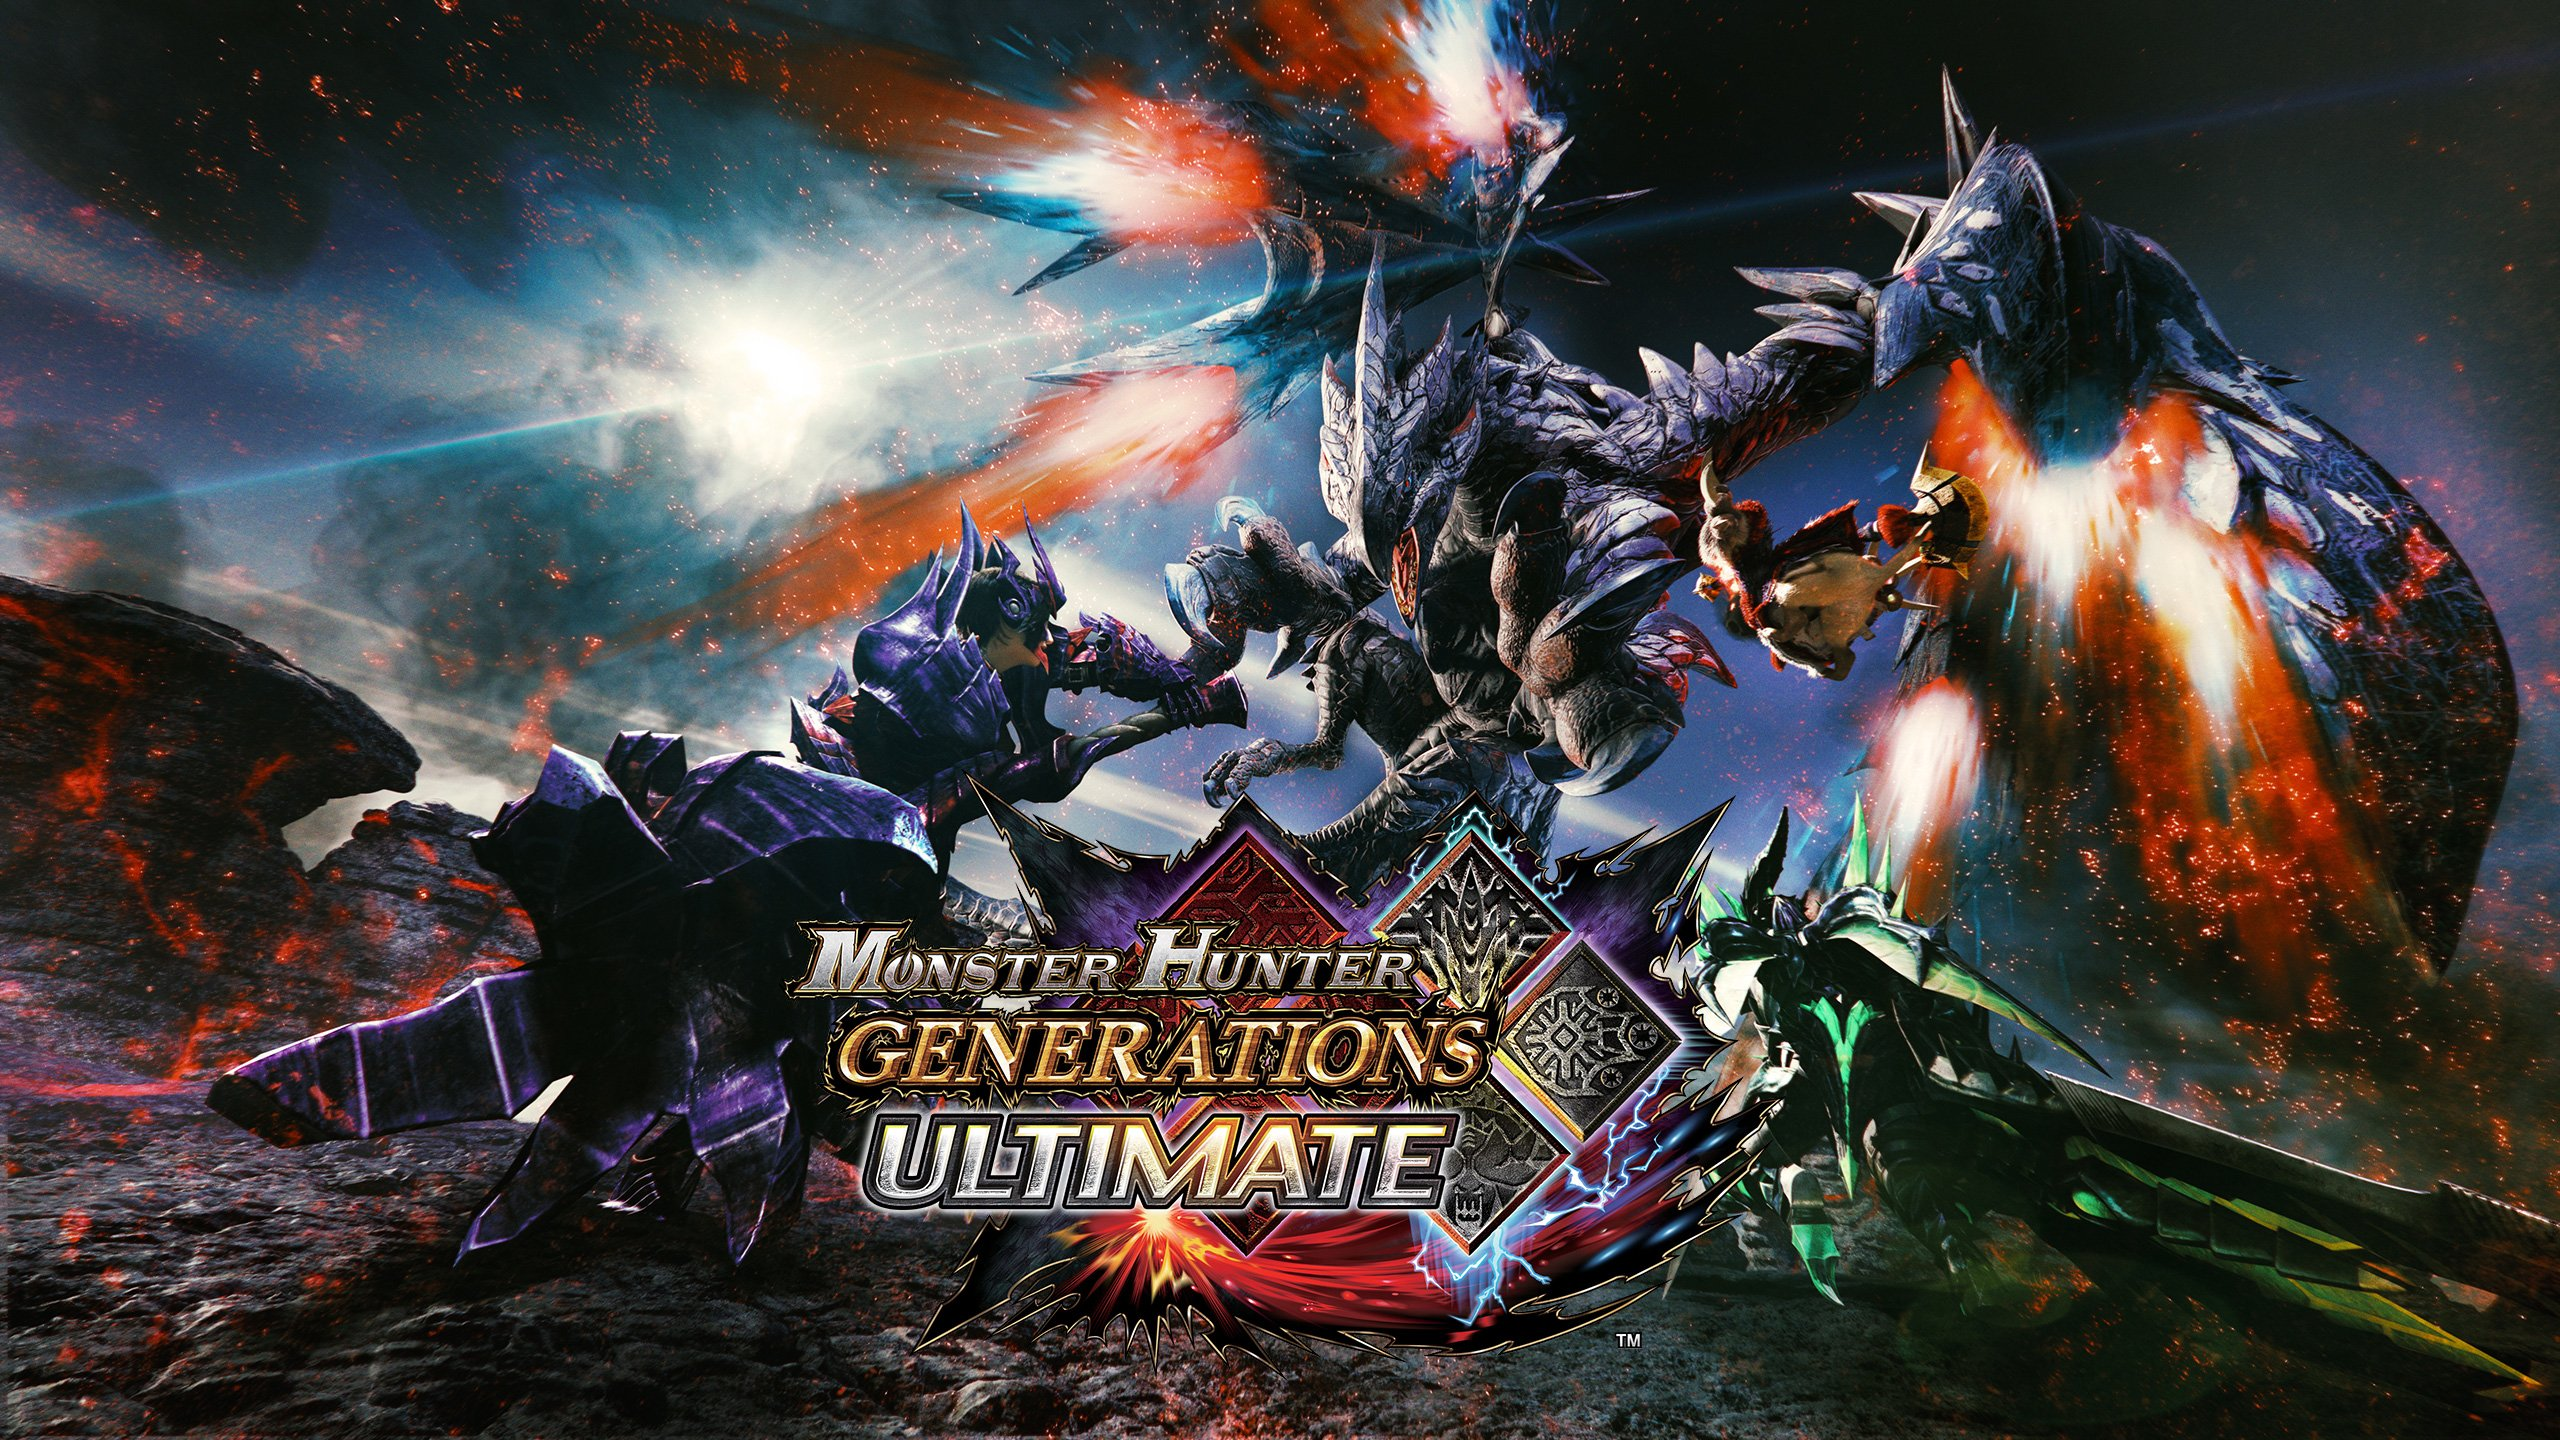 Monster Hunter Generations Ultimate On Switch August 28 - EXP GG